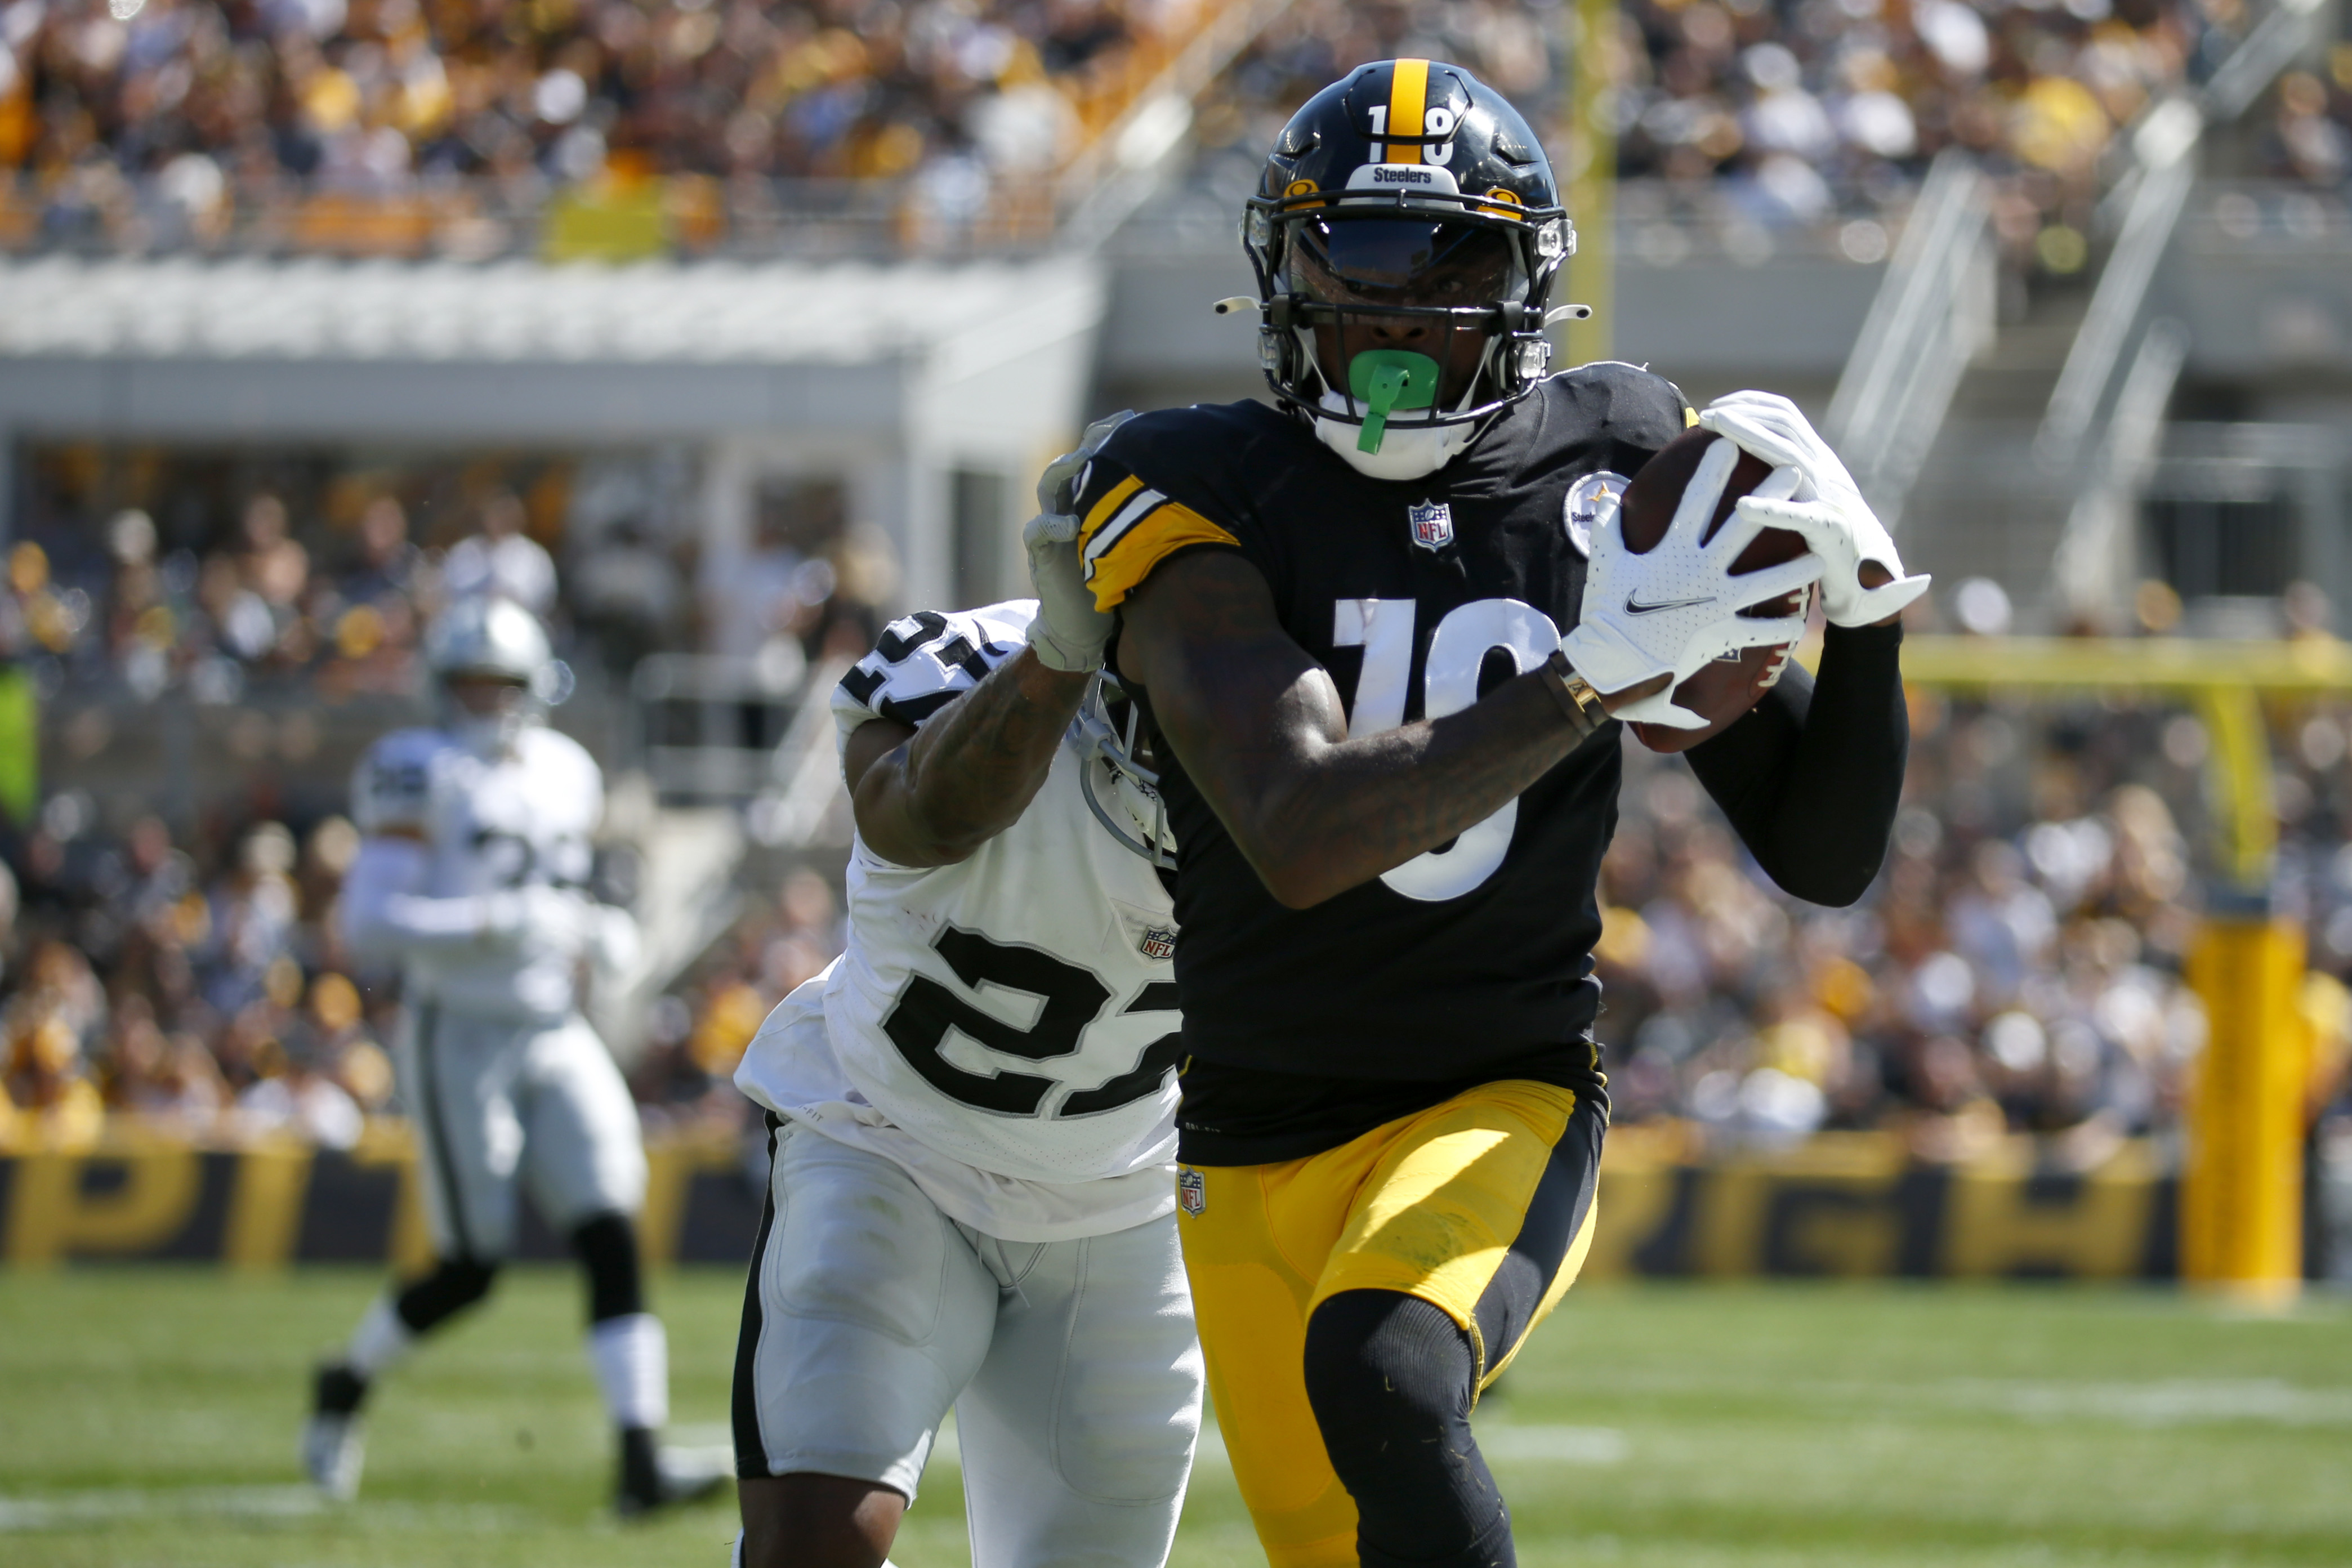 Wide receiver Diontae Johnson #18 of the Pittsburgh Steelers makes a catch against cornerback Trayvon Mullen Jr. #27 of the Las Vegas Raiders in the first half of the game at Heinz Field on September 19, 2021 in Pittsburgh, Pennsylvania.